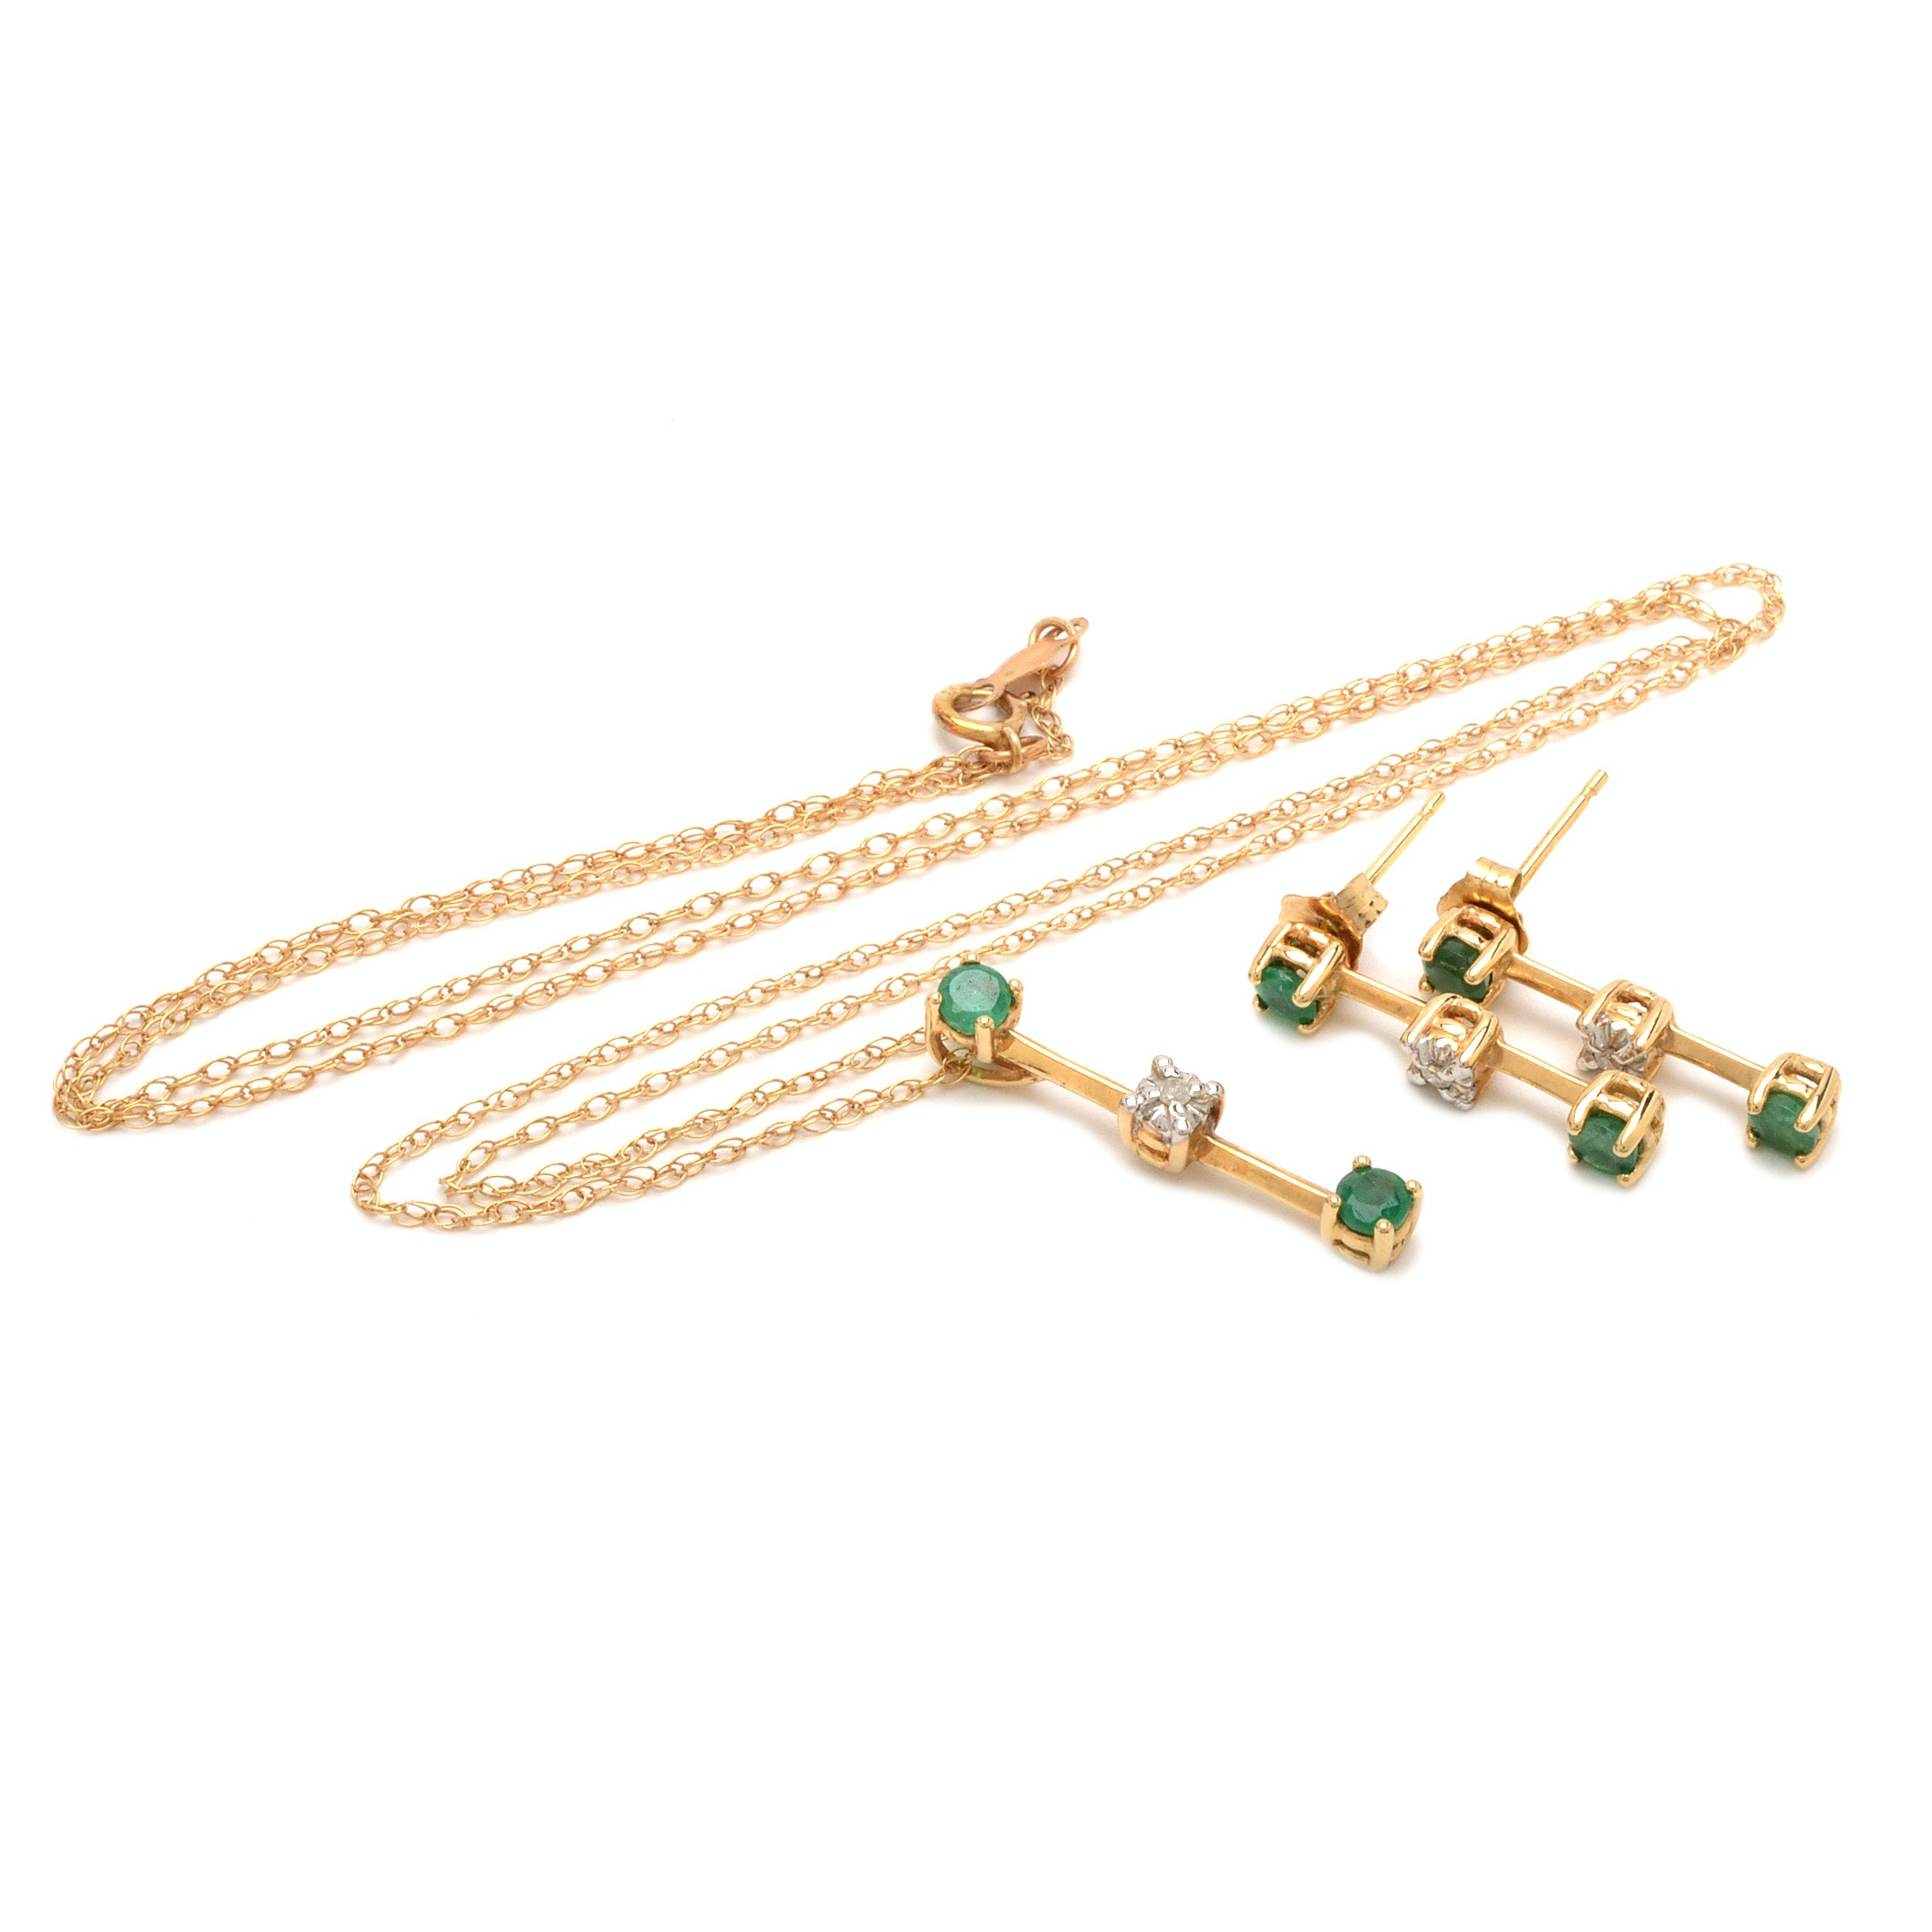 10K Yellow Gold Emerald and Diamond Pendant Necklace and Earrings